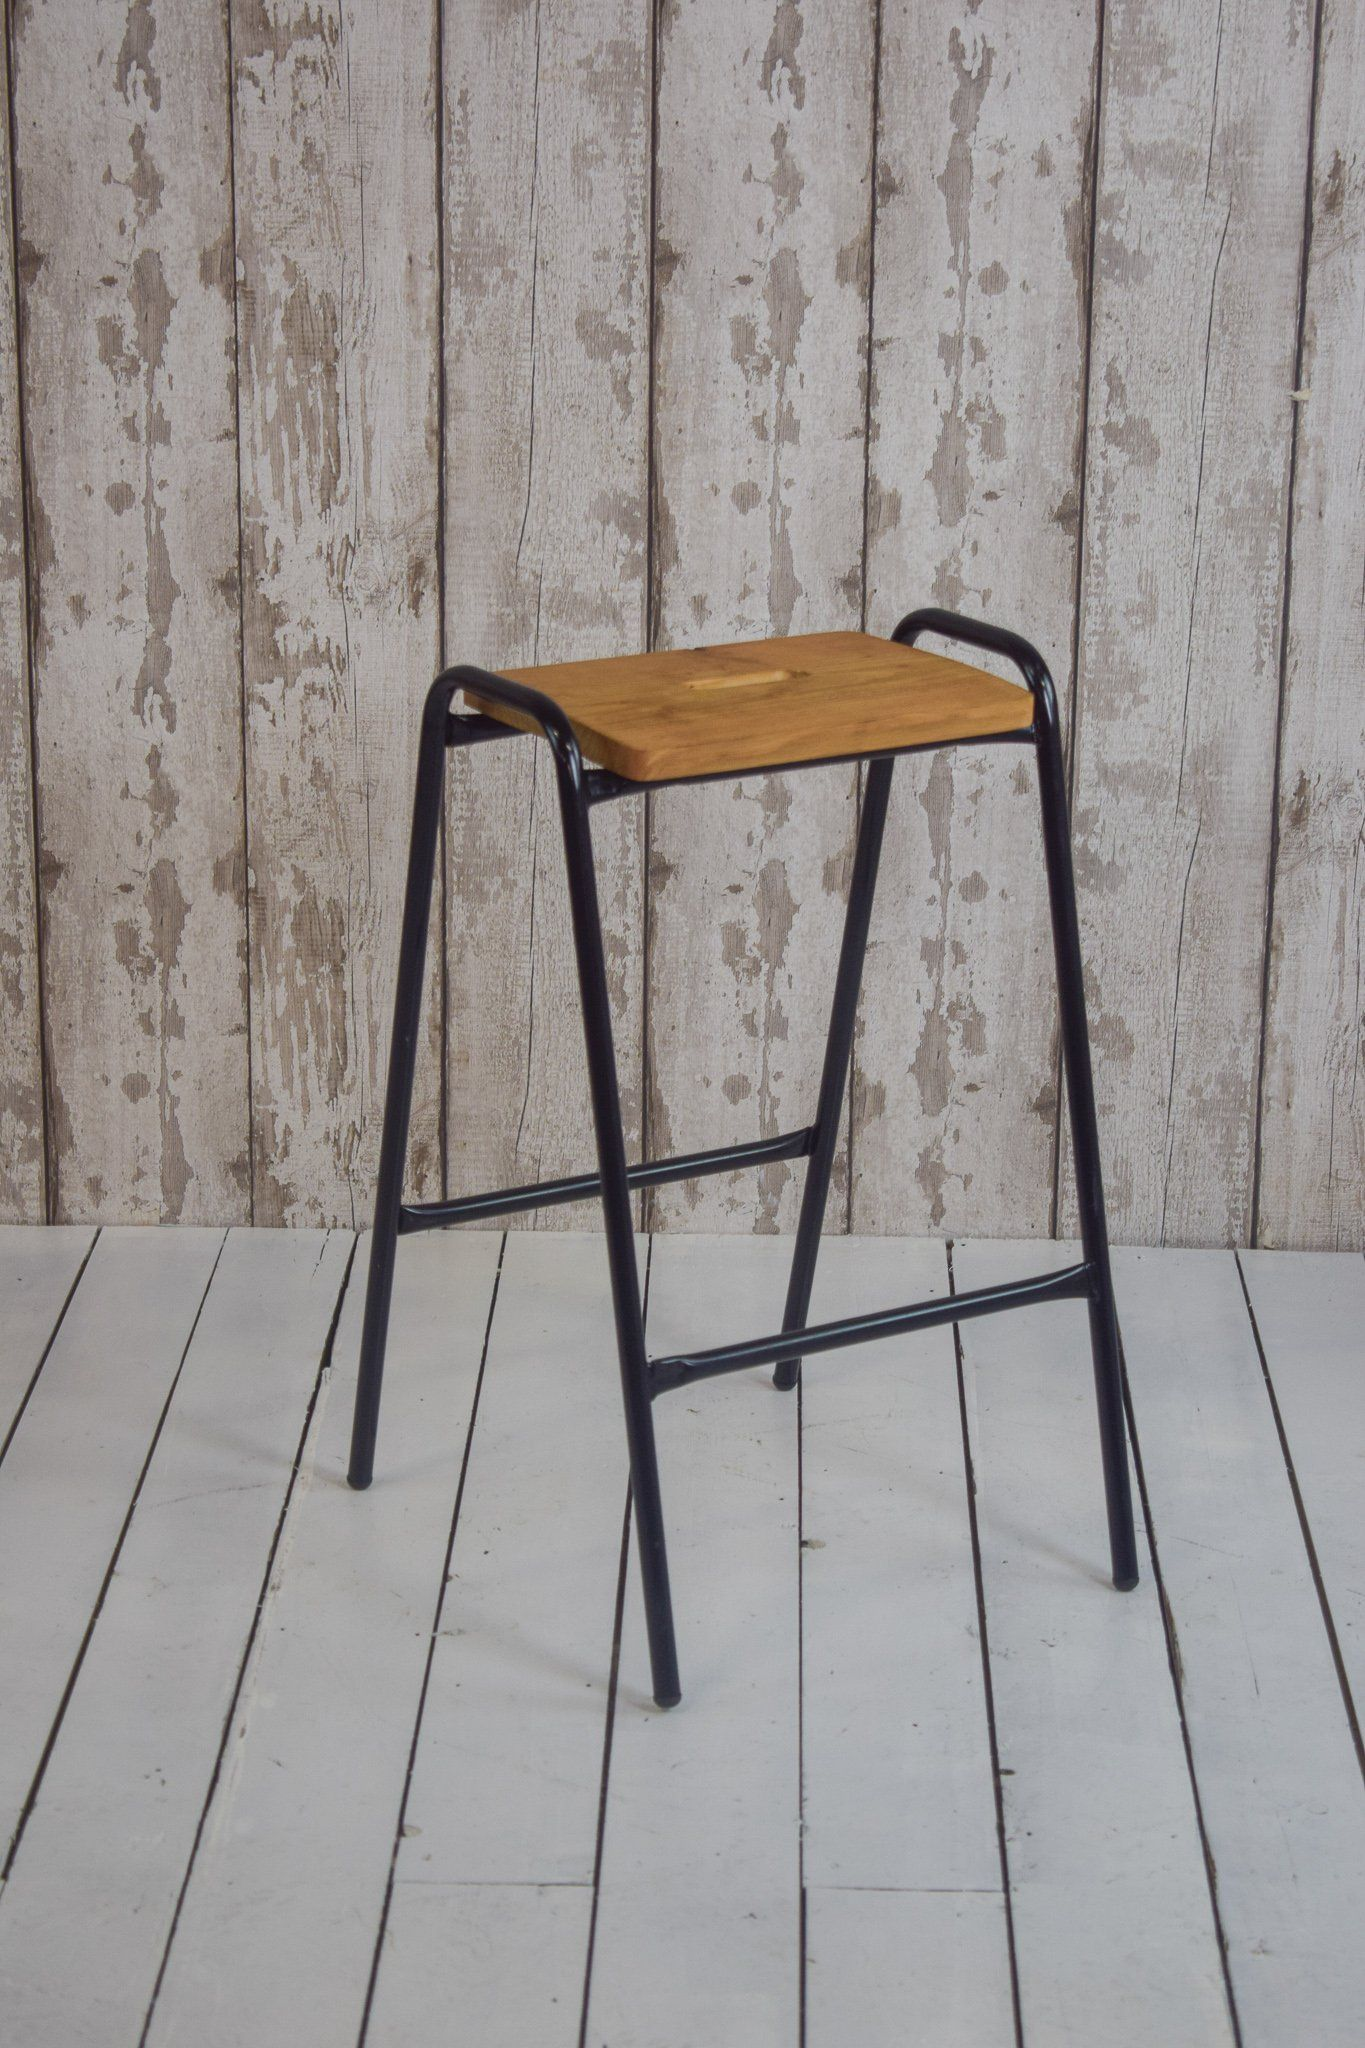 Vintage Cafe Bar Kitchen Stools With Black Metal Frames And Pine Seats Vintage Cafe Vintage Bedroom Decor Kitchen Bar